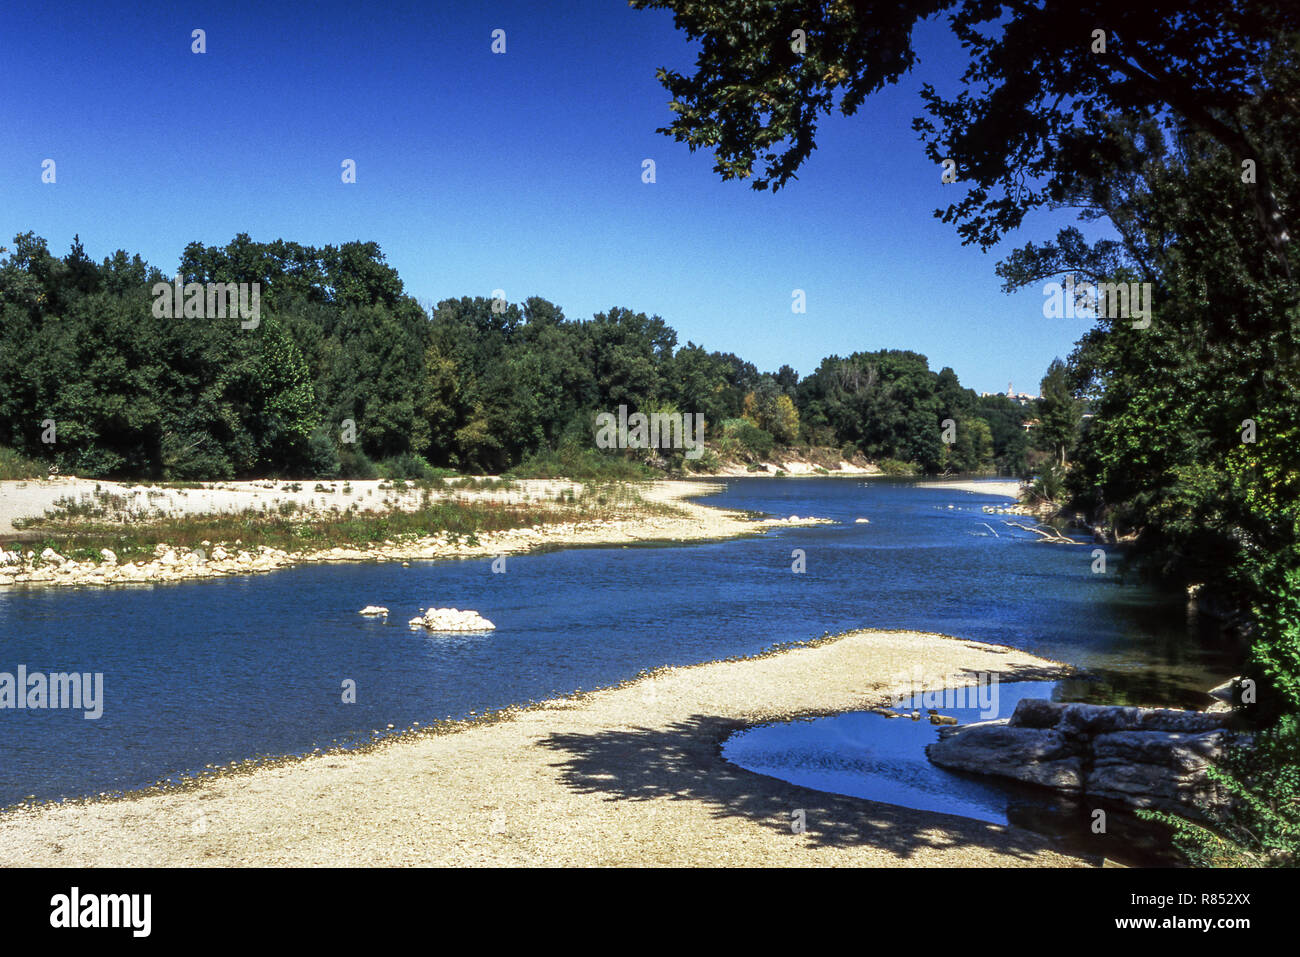 France.Dept.Gard. The river Gordon near the Roman aqueduct (The    Pont du Gard) that carried water into the city of Nimes - Stock Image